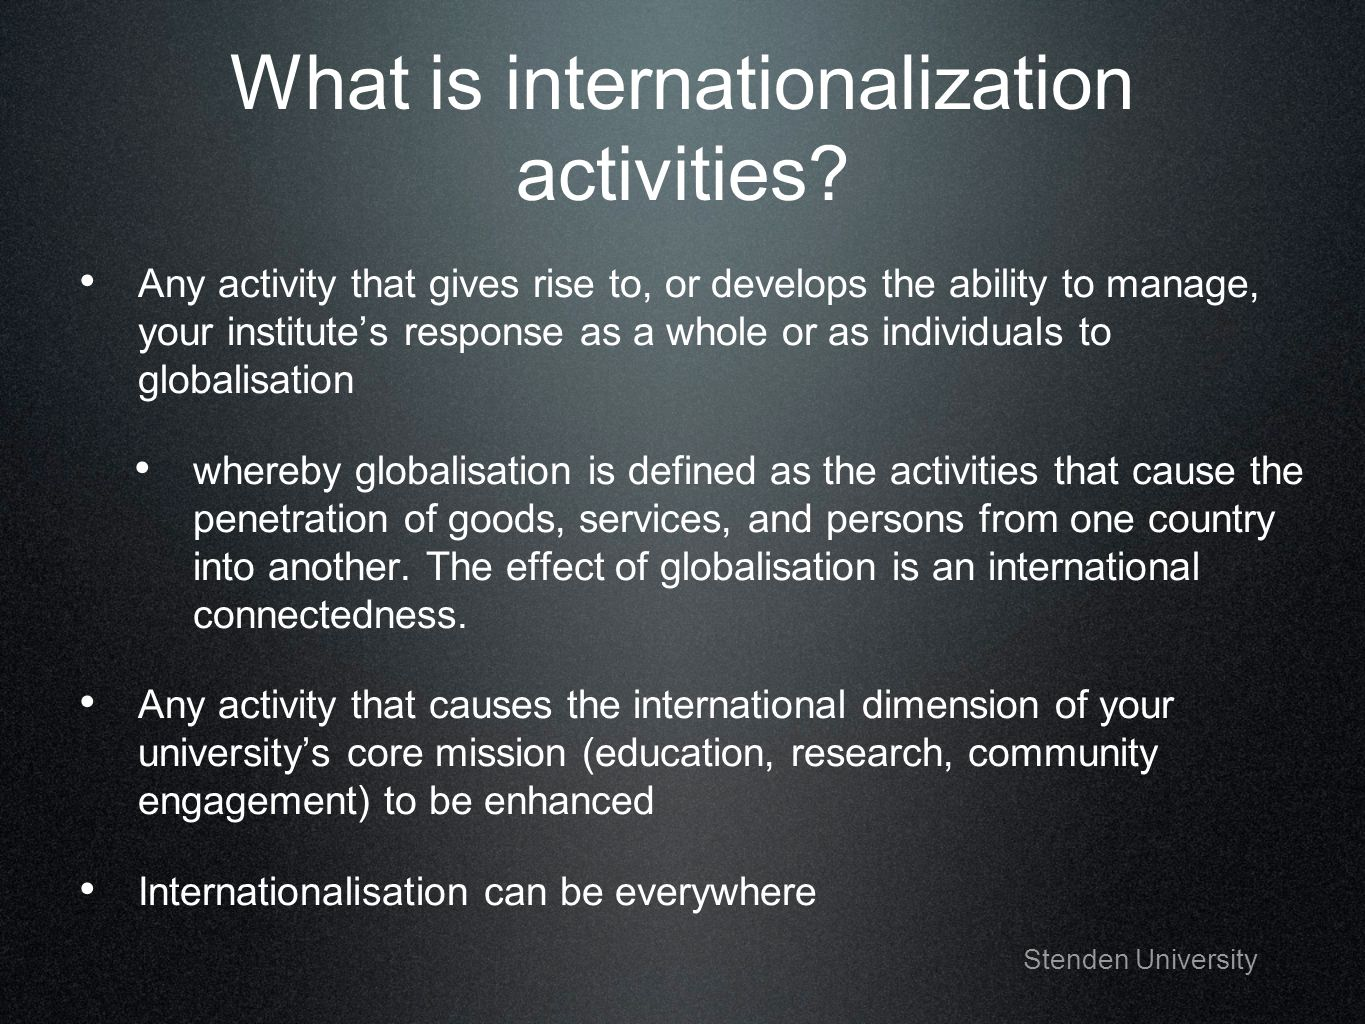 What is internationalization activities